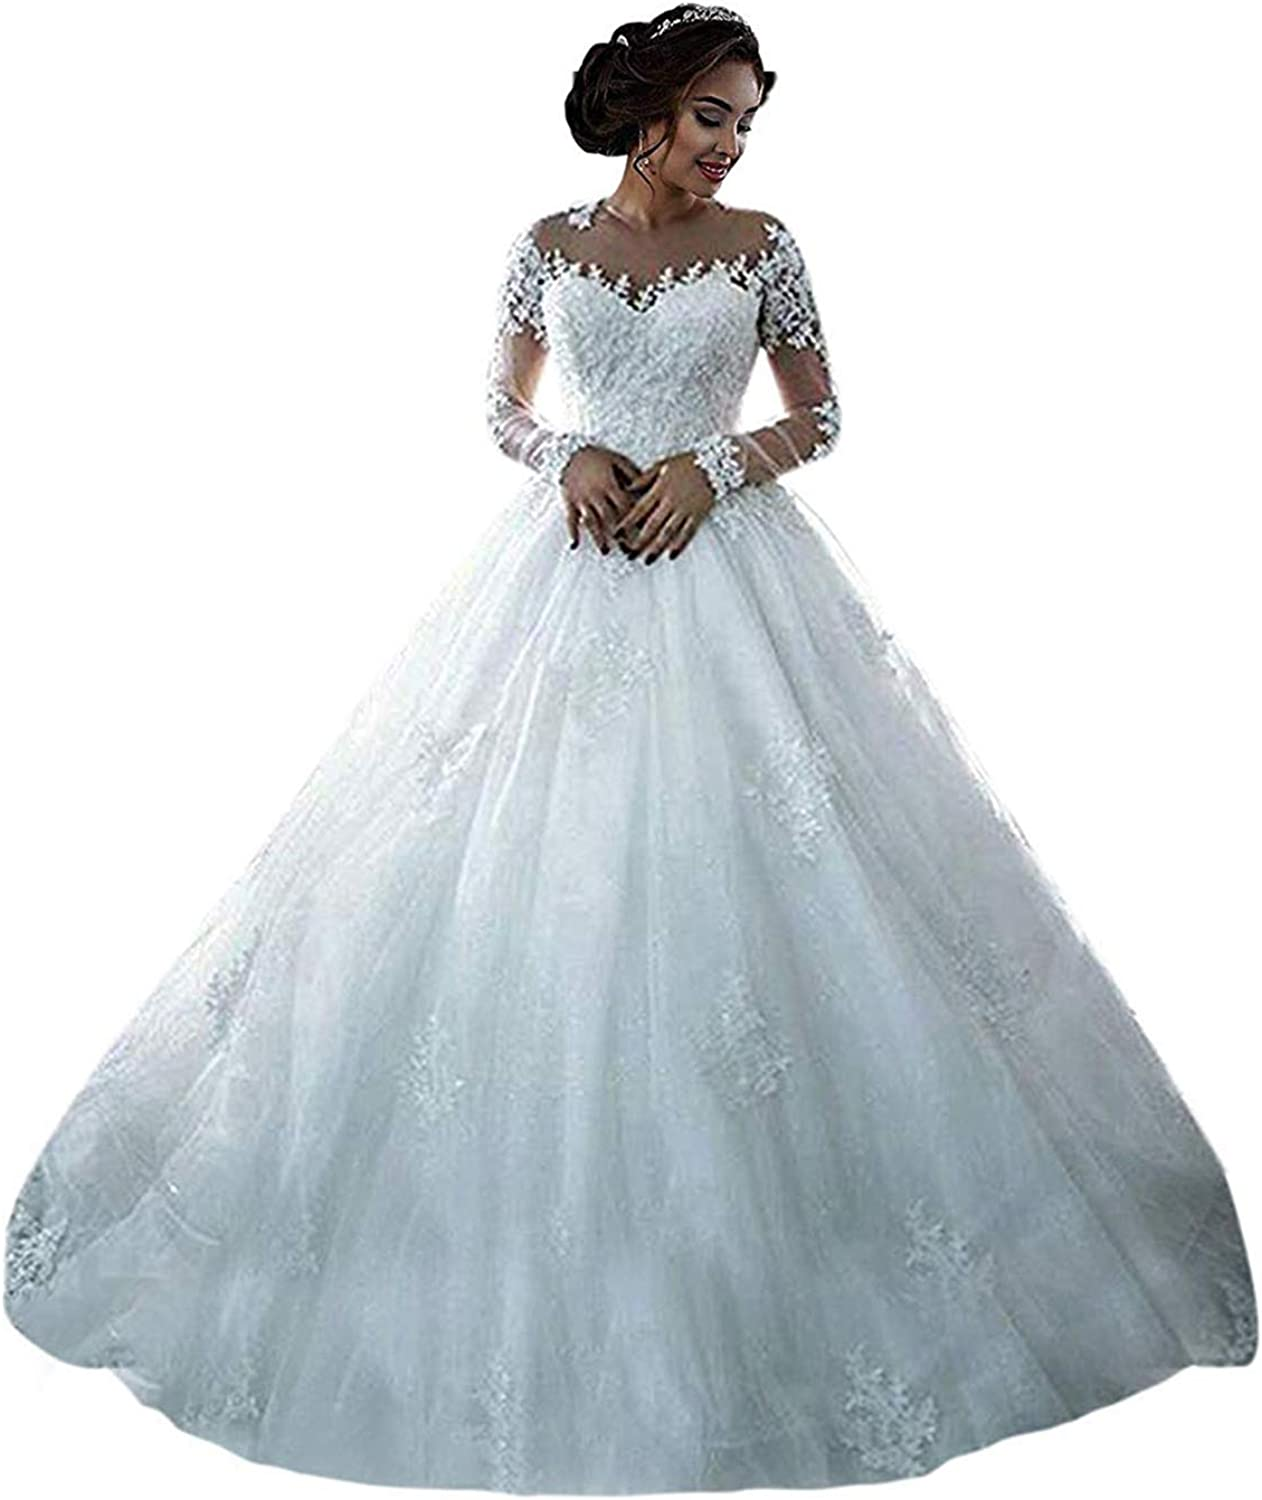 RYANTH New Women's Long Sleeves O Neck Lace Ball Gown Wedding Dress Bridal  Gowns R18